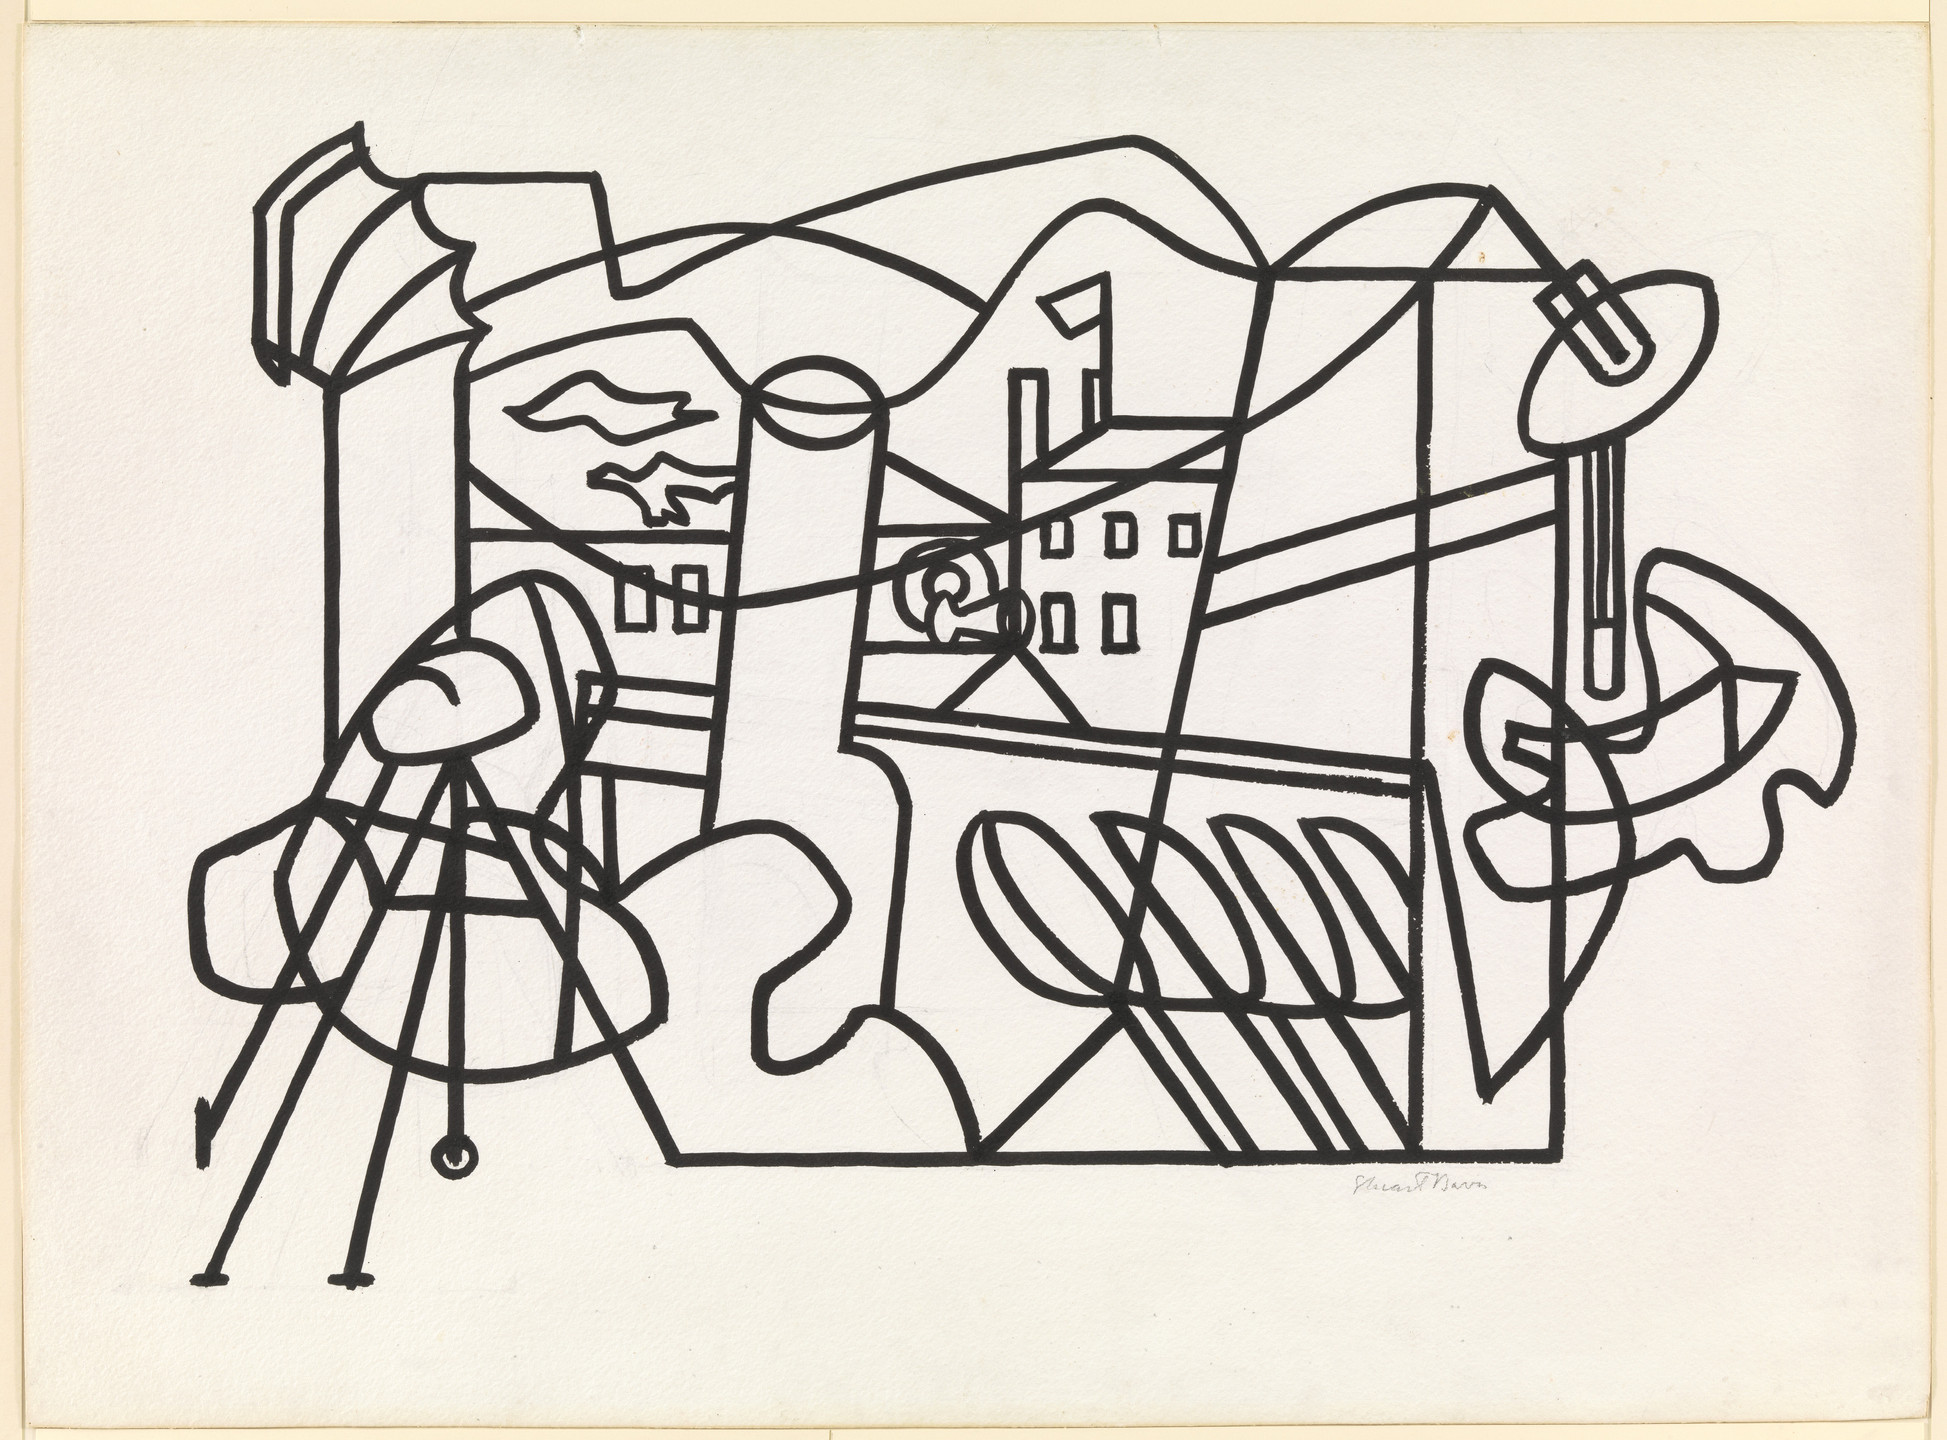 Stuart Davis. Composition No. 5. 1932